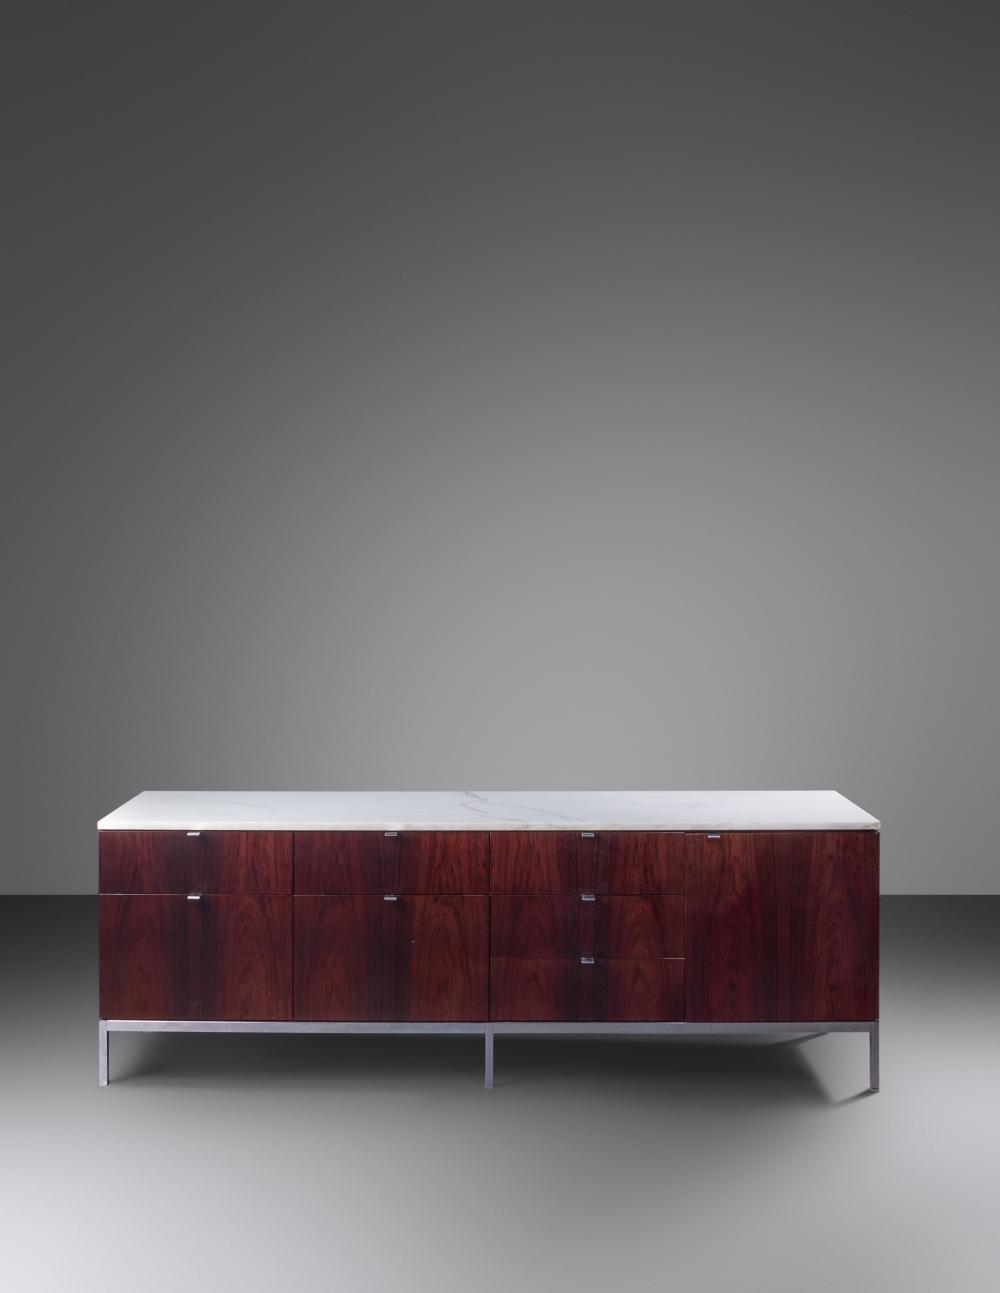 Florence Knoll (American, 1917-2019) Credenza, Knoll, USA